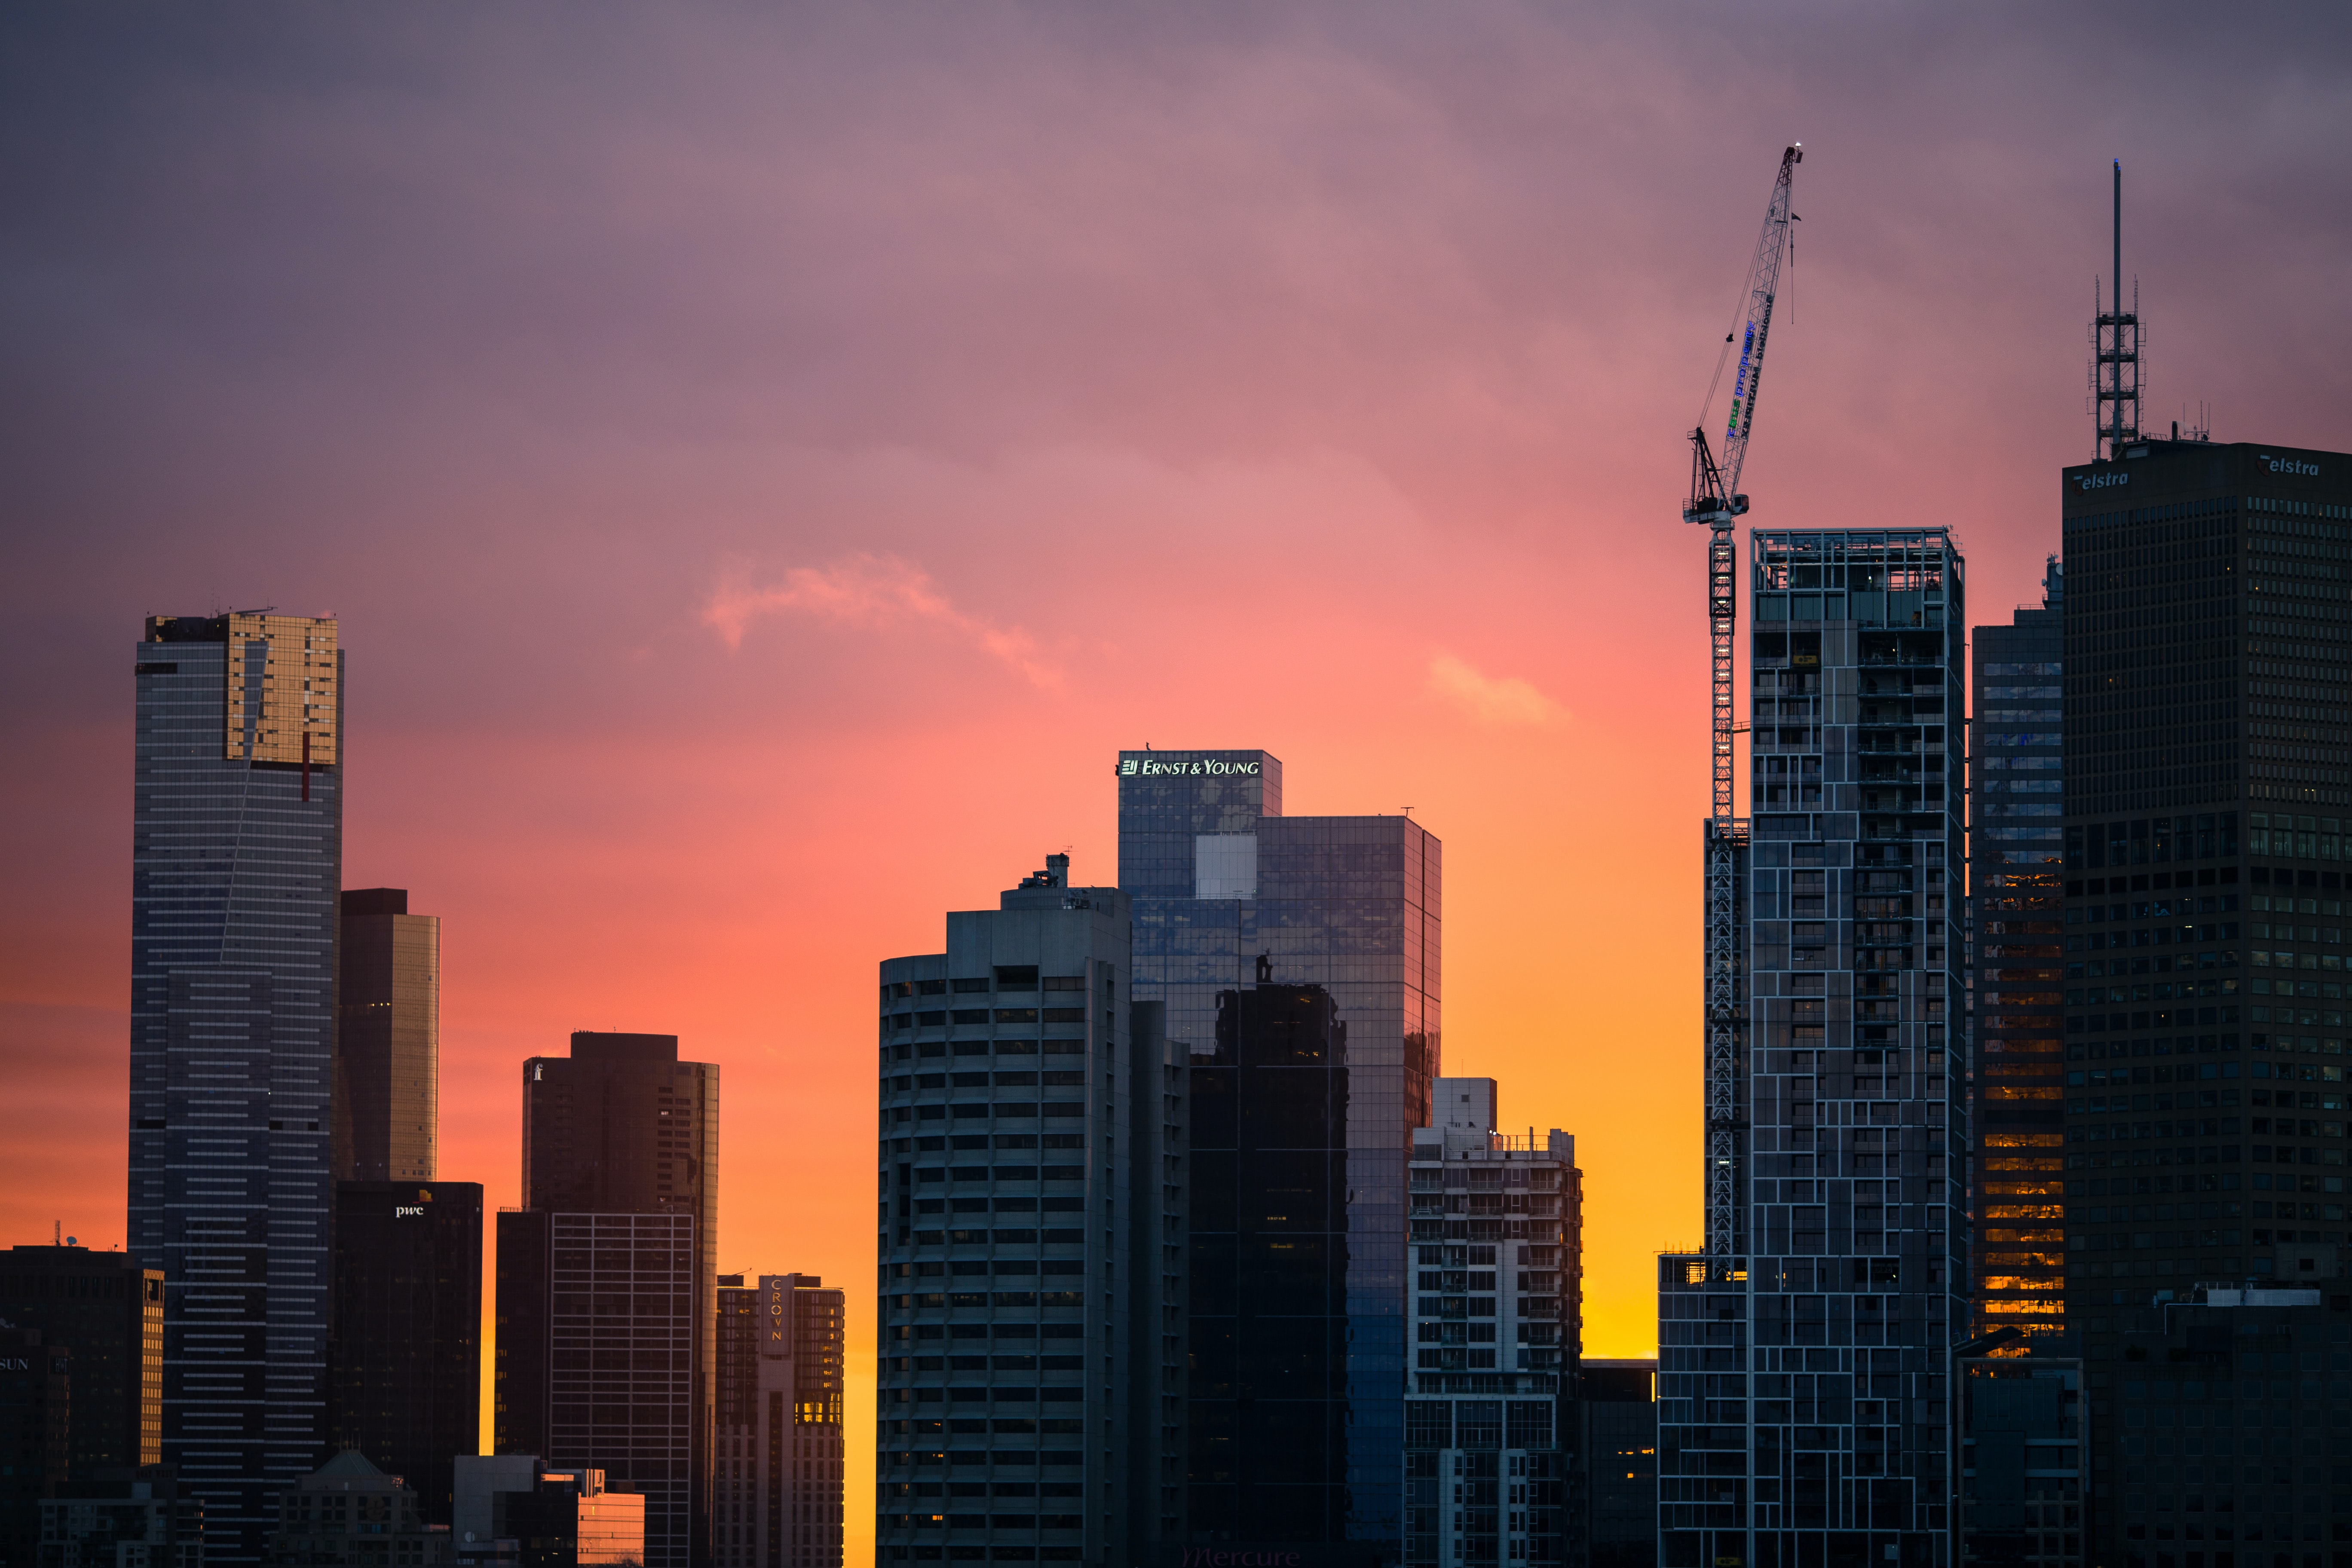 A pink and orange sunset behind the skyscrapers of Melbourne